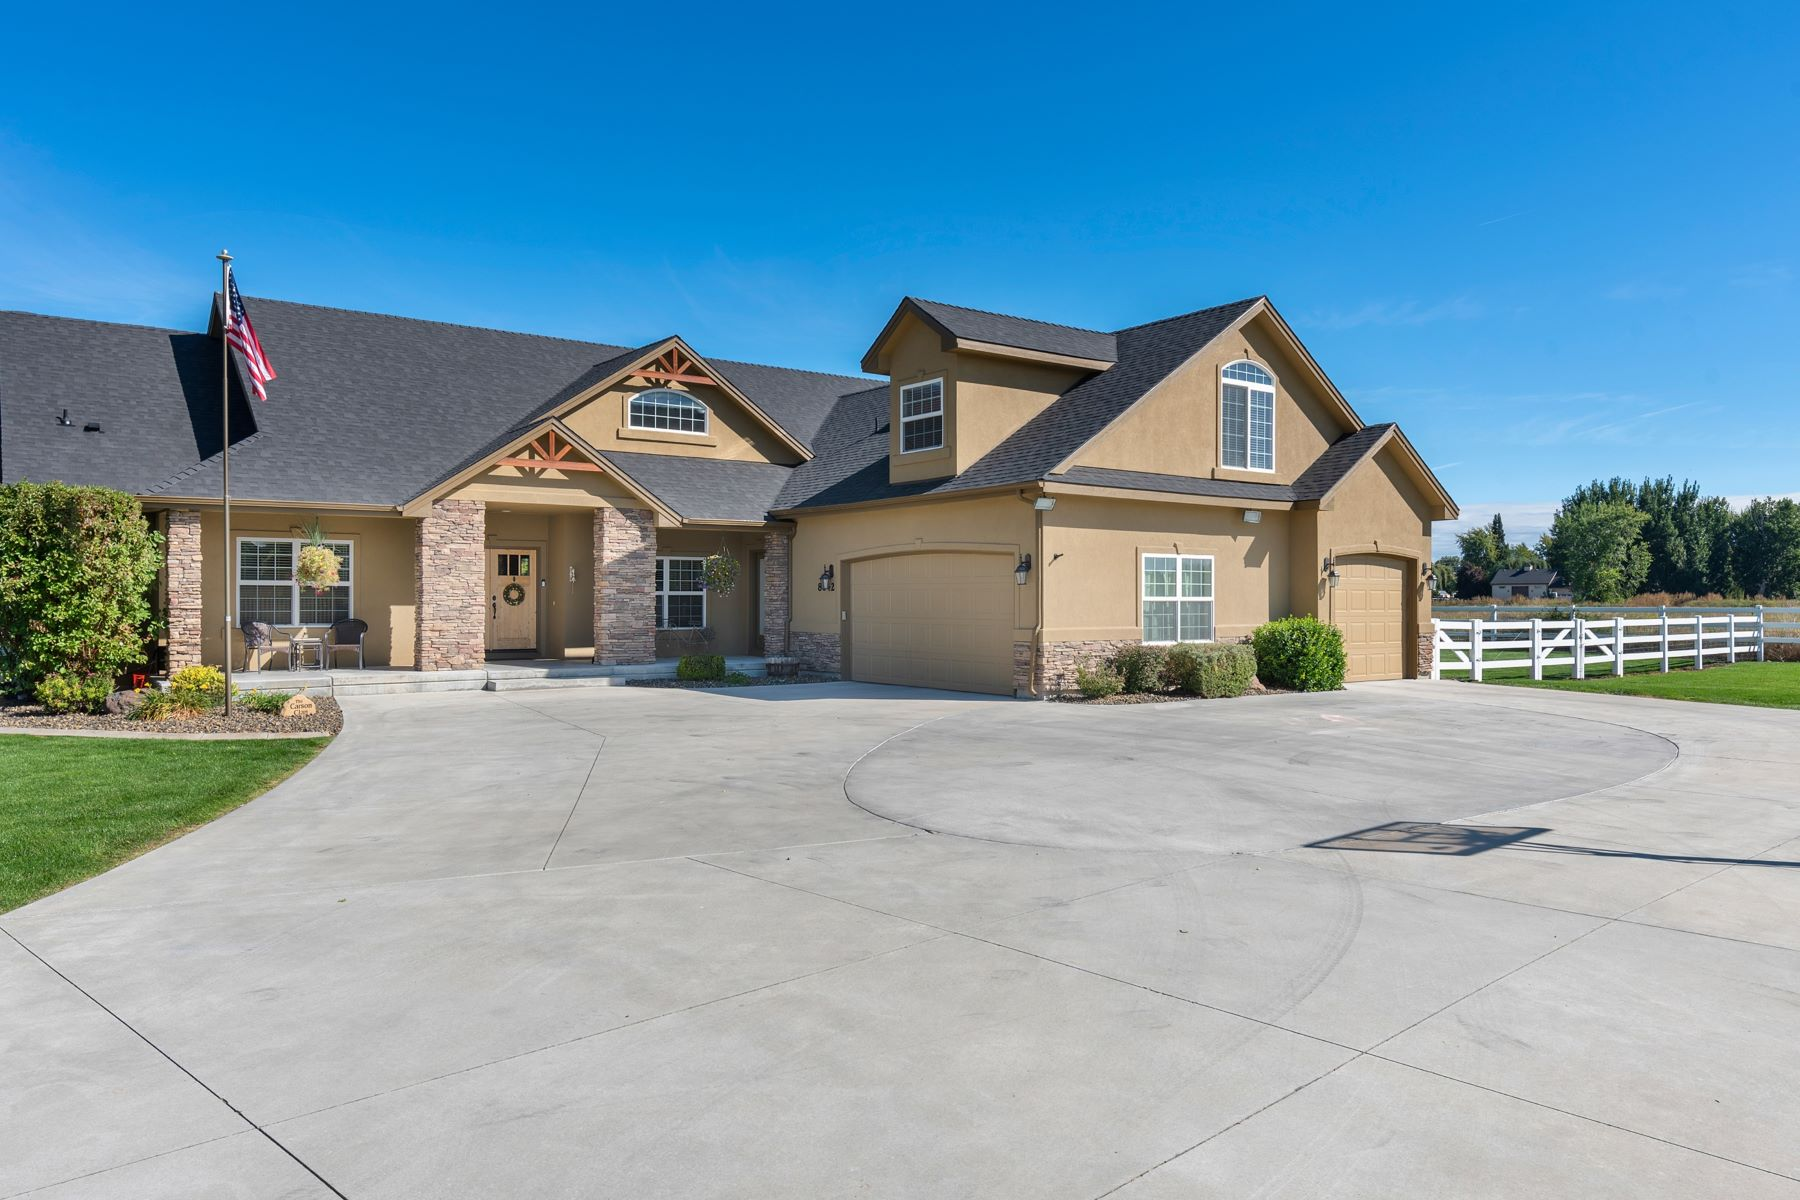 Single Family Homes for Sale at 8642 Kingston Way, Middleton 8642 Kingston Way Middleton, Idaho 83644 United States